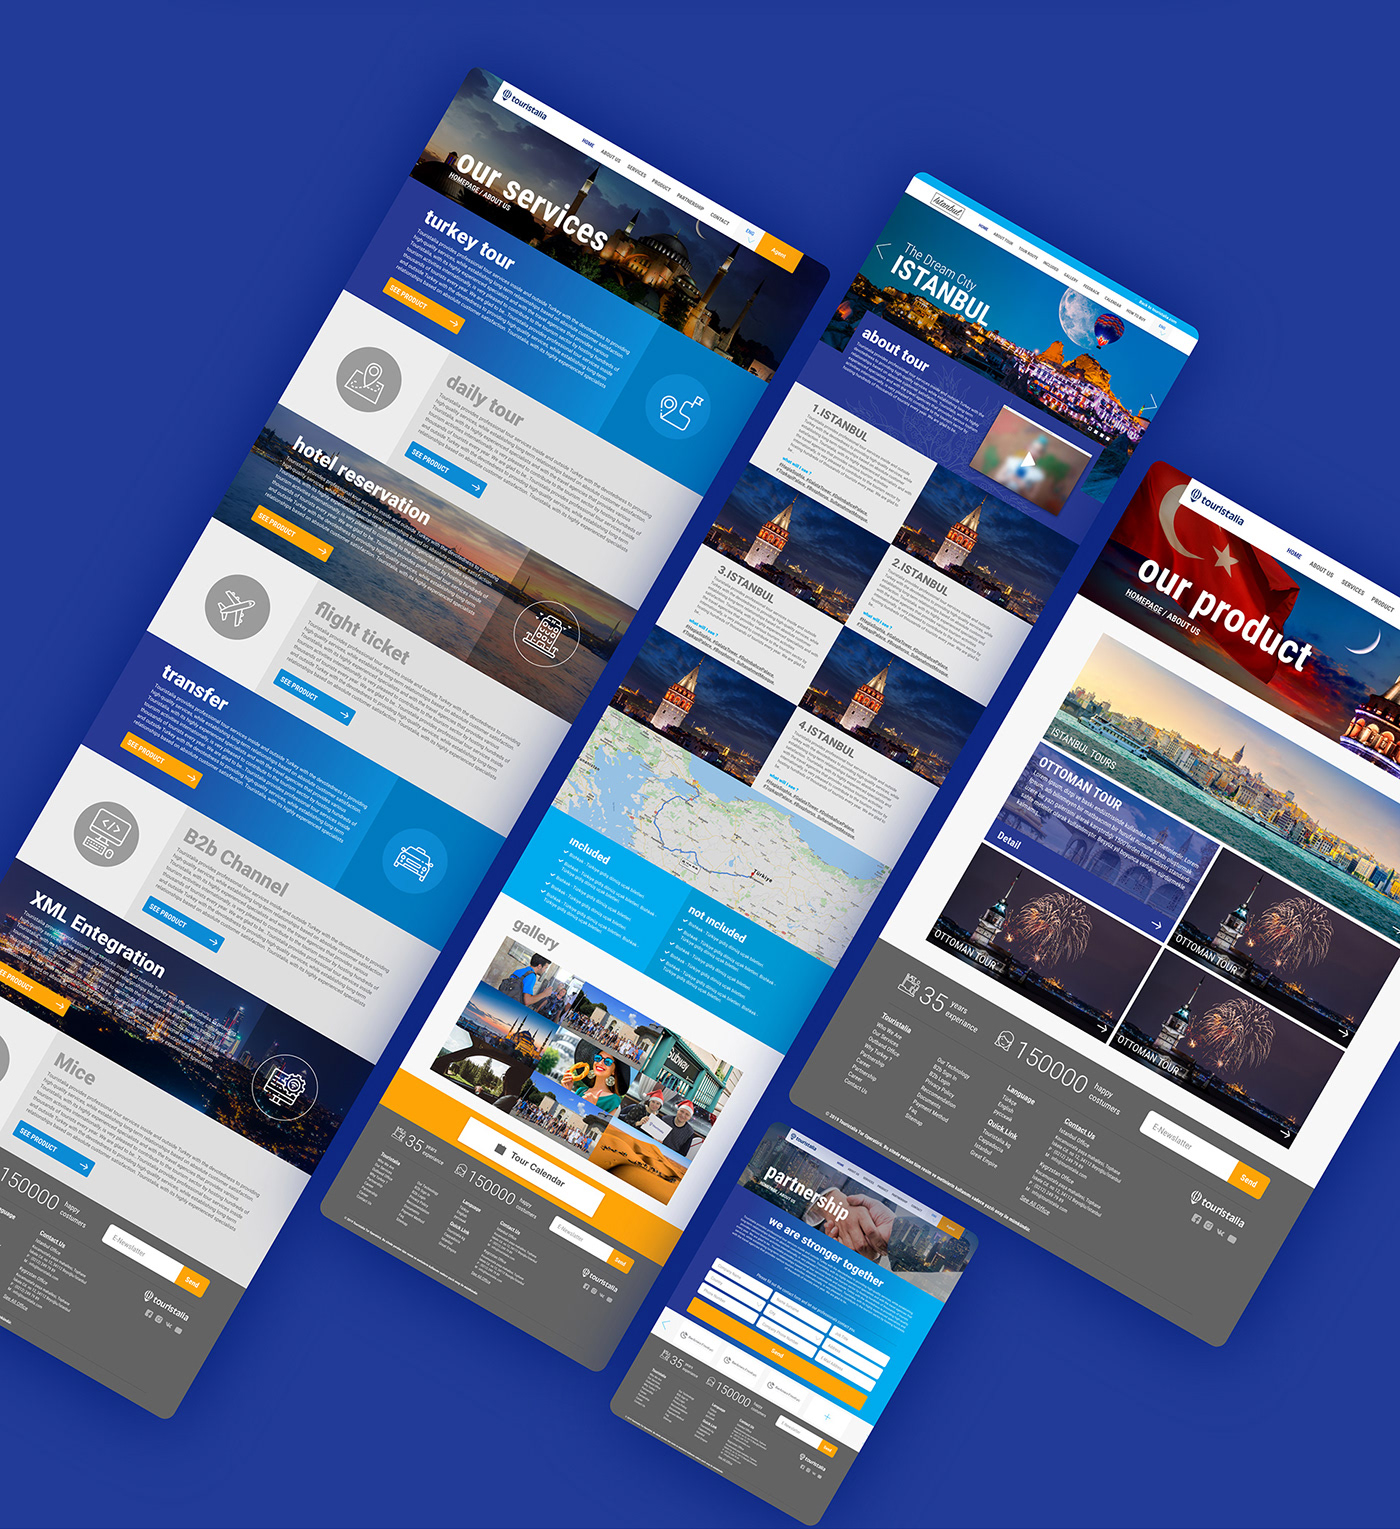 agency,design,Travel,UI,user experience,user interface,ux,Web,Web Design